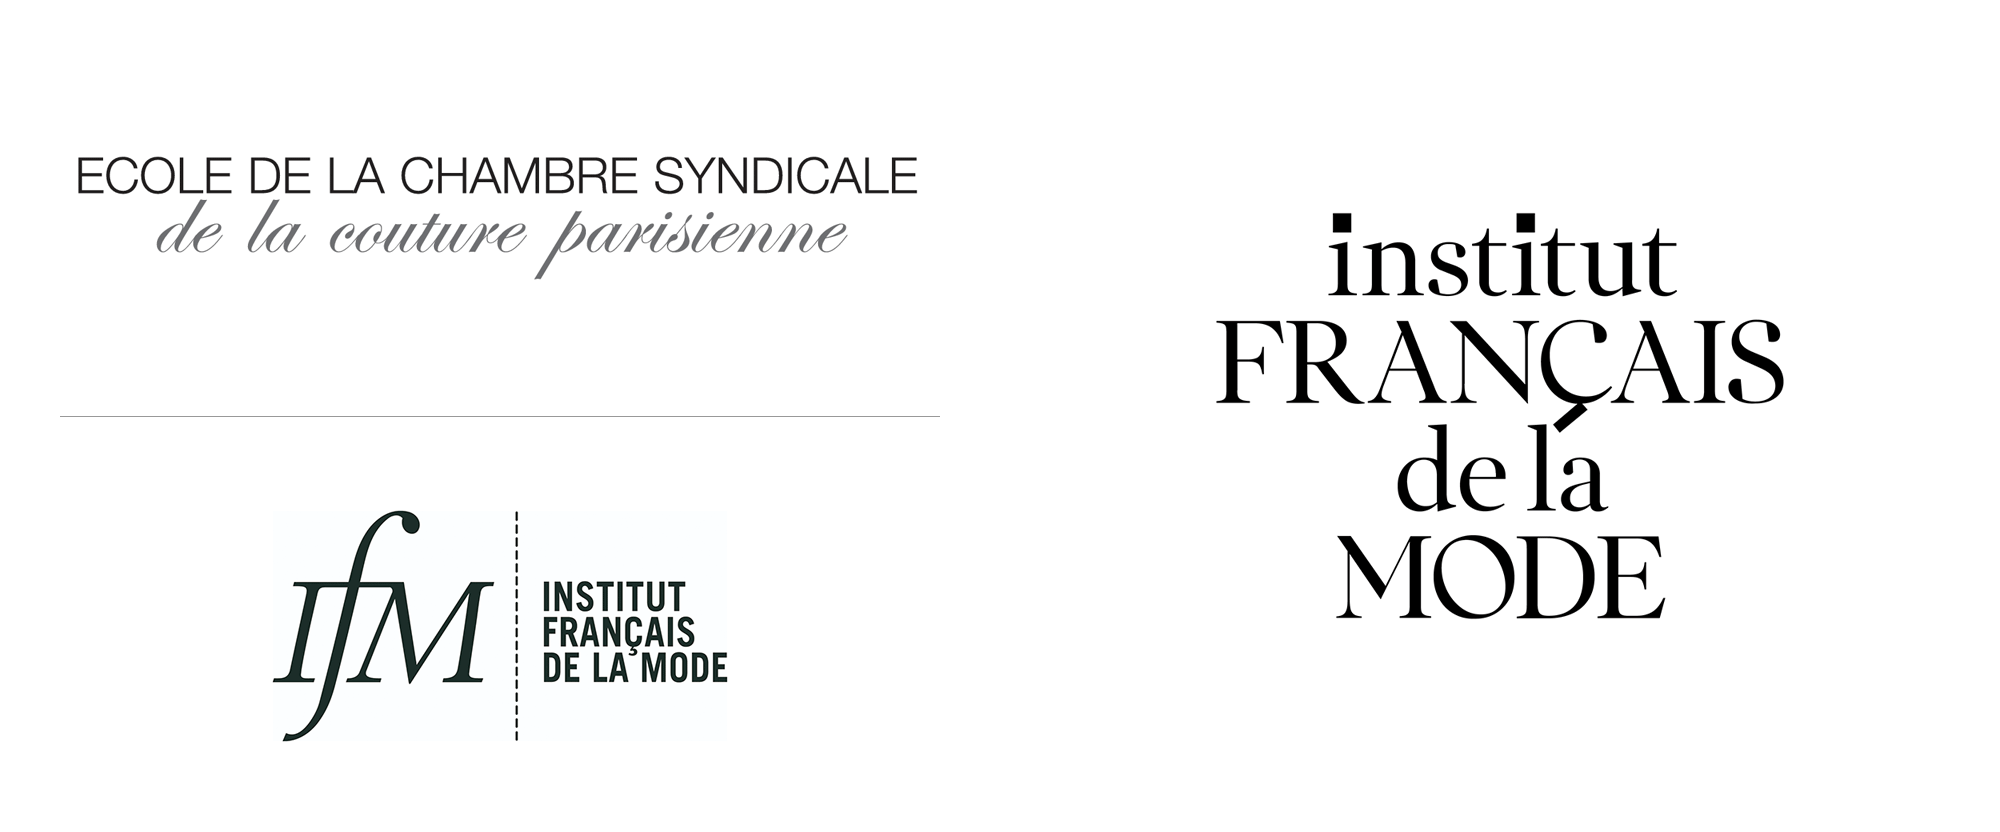 New Logo and Identity for Institut Français de la Mode by Base